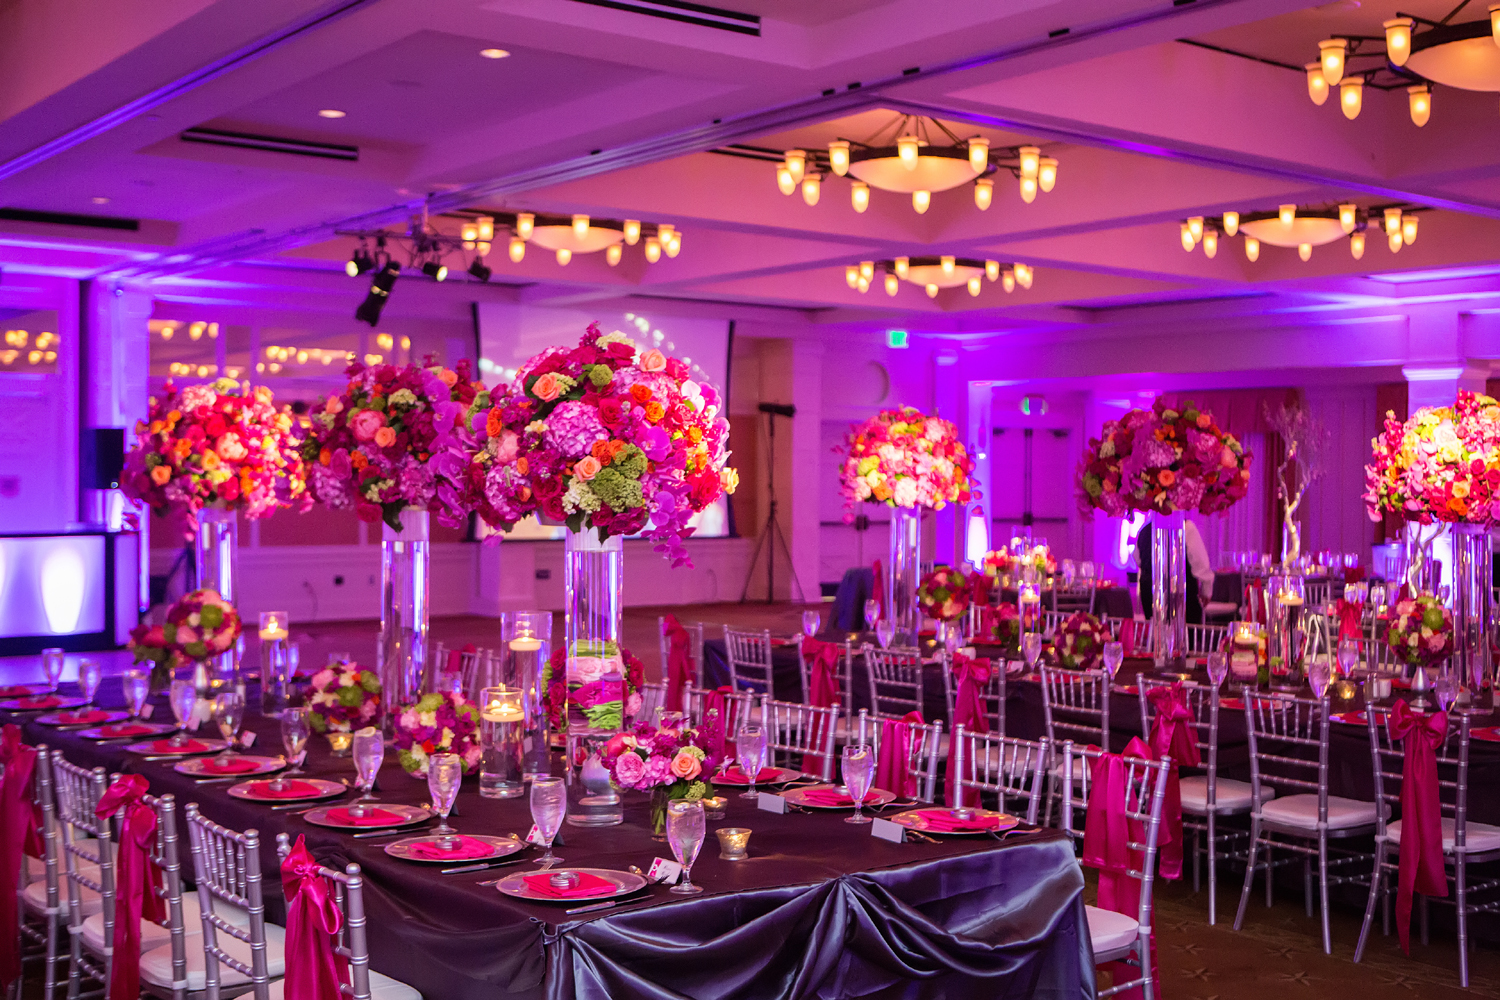 Tips to hire an event planner